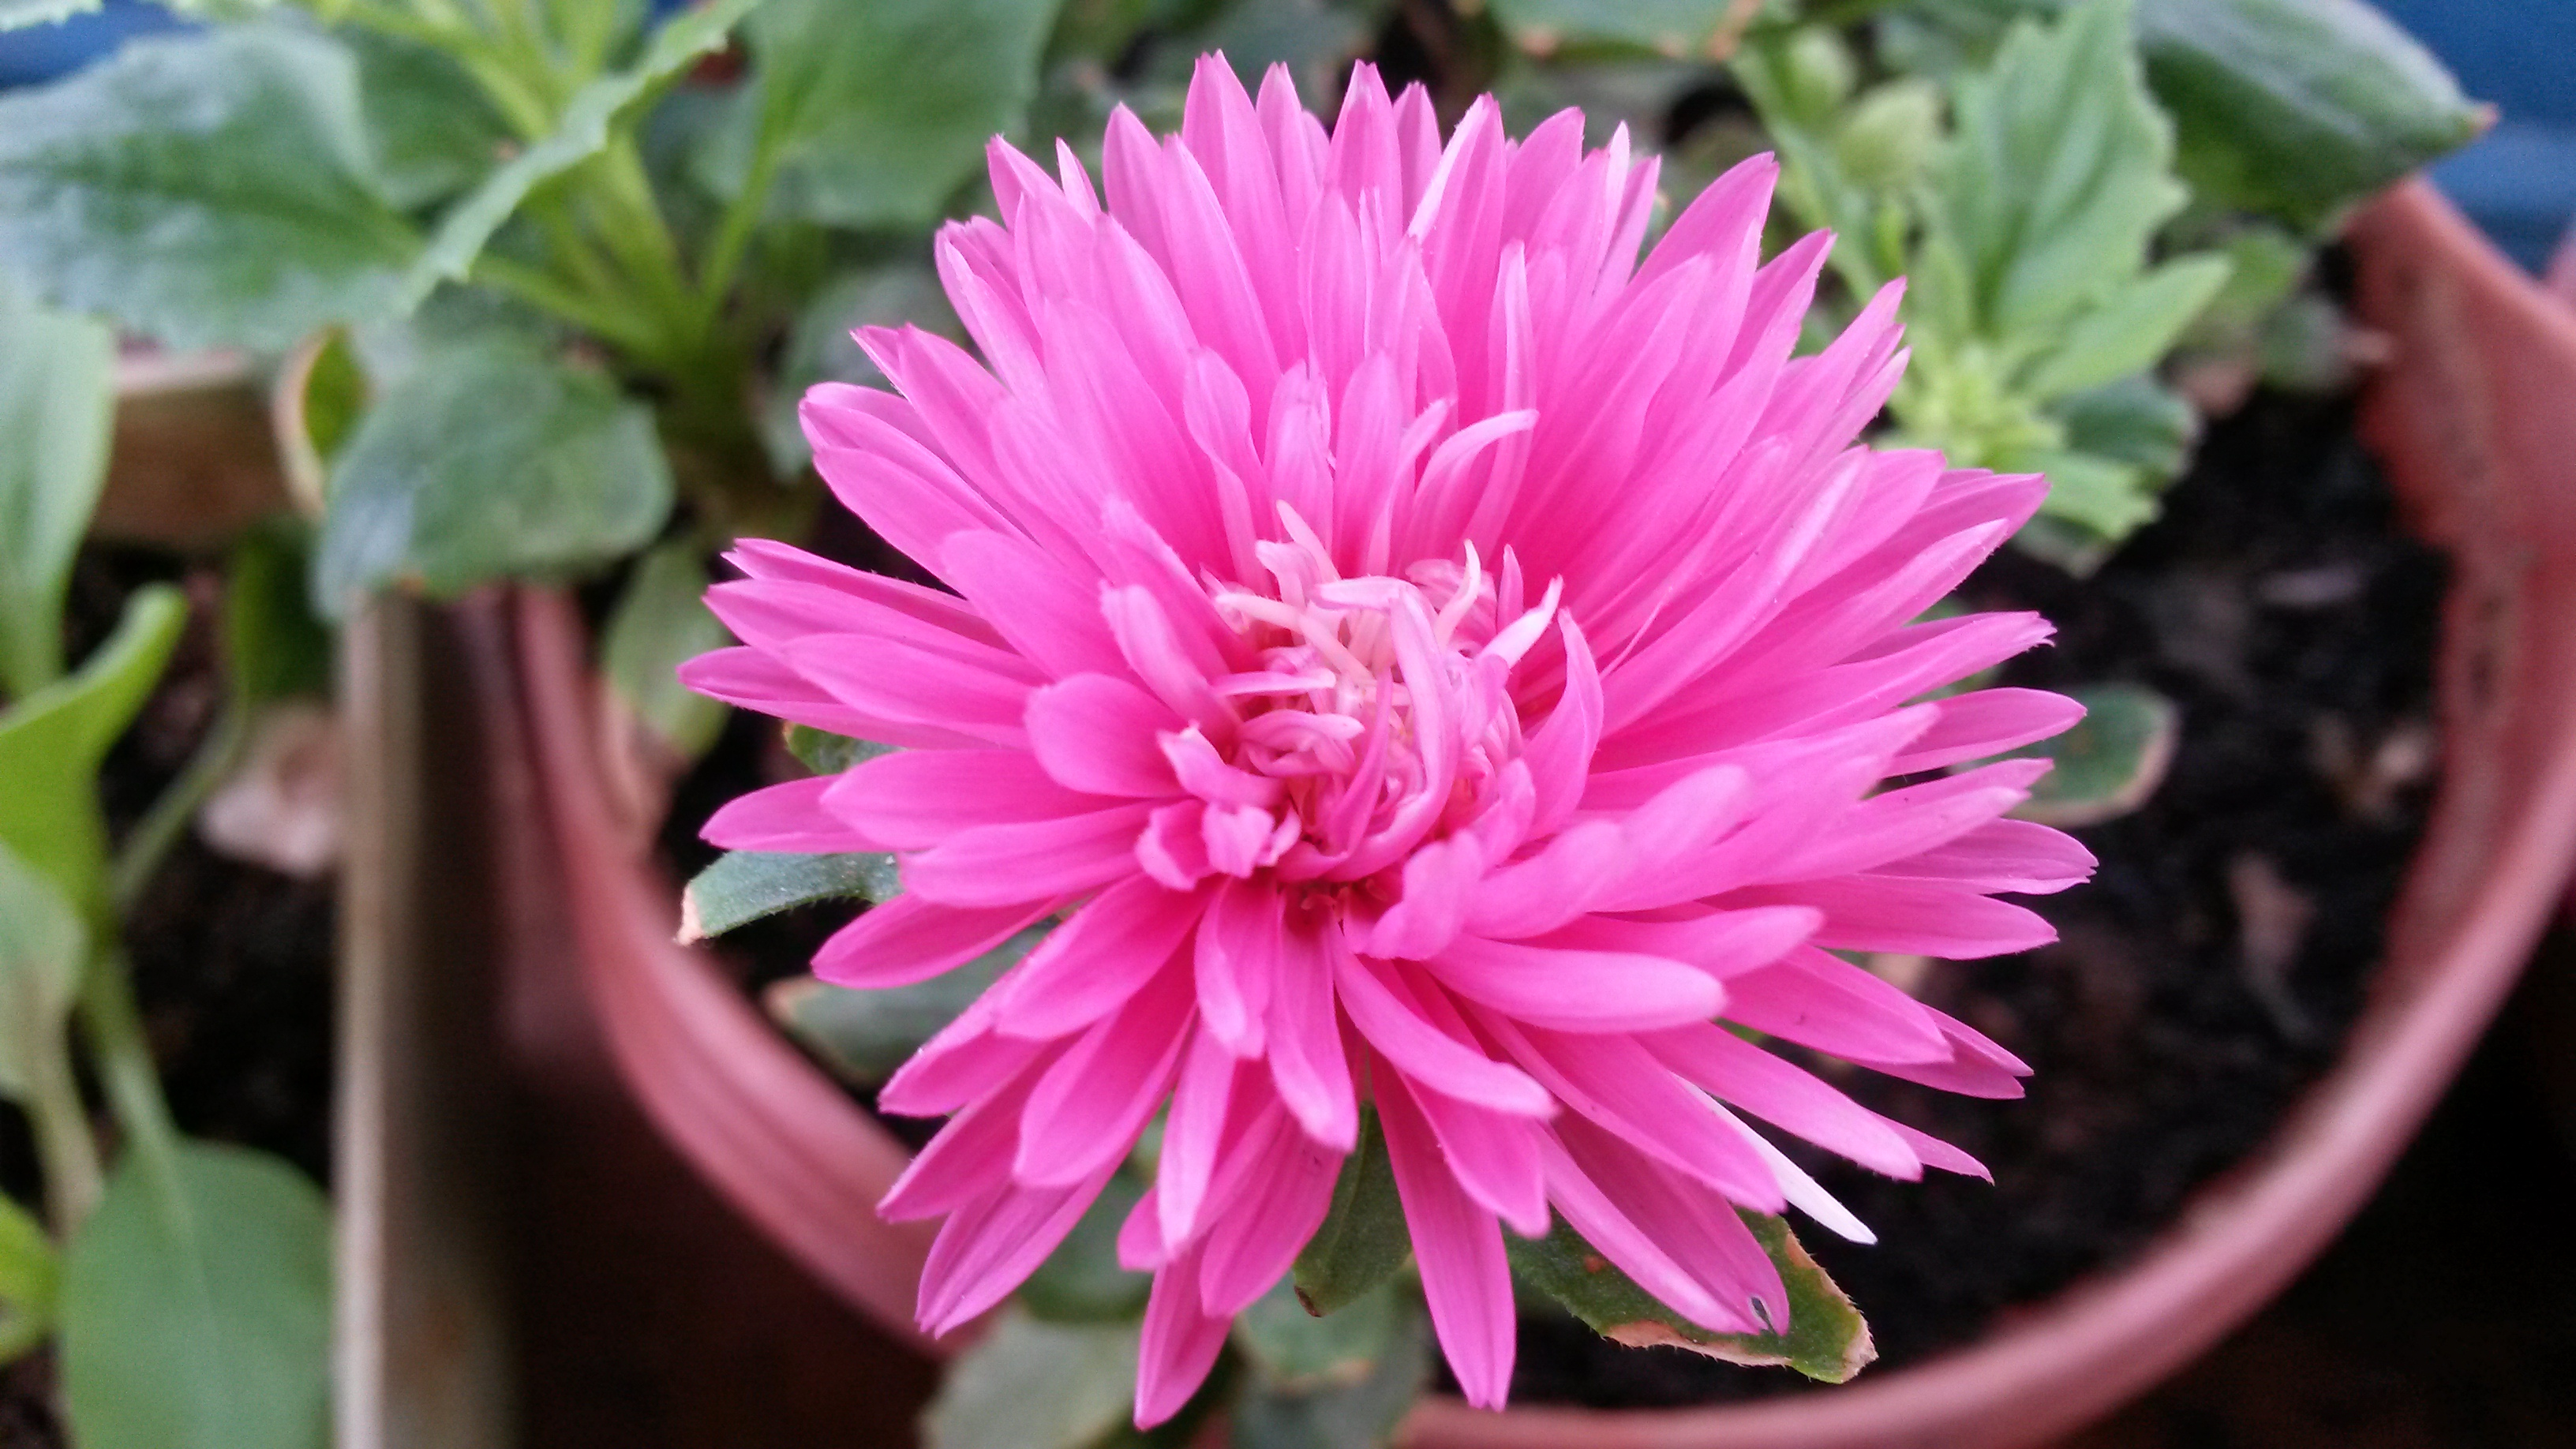 aster flower information in hindi  flower, Natural flower